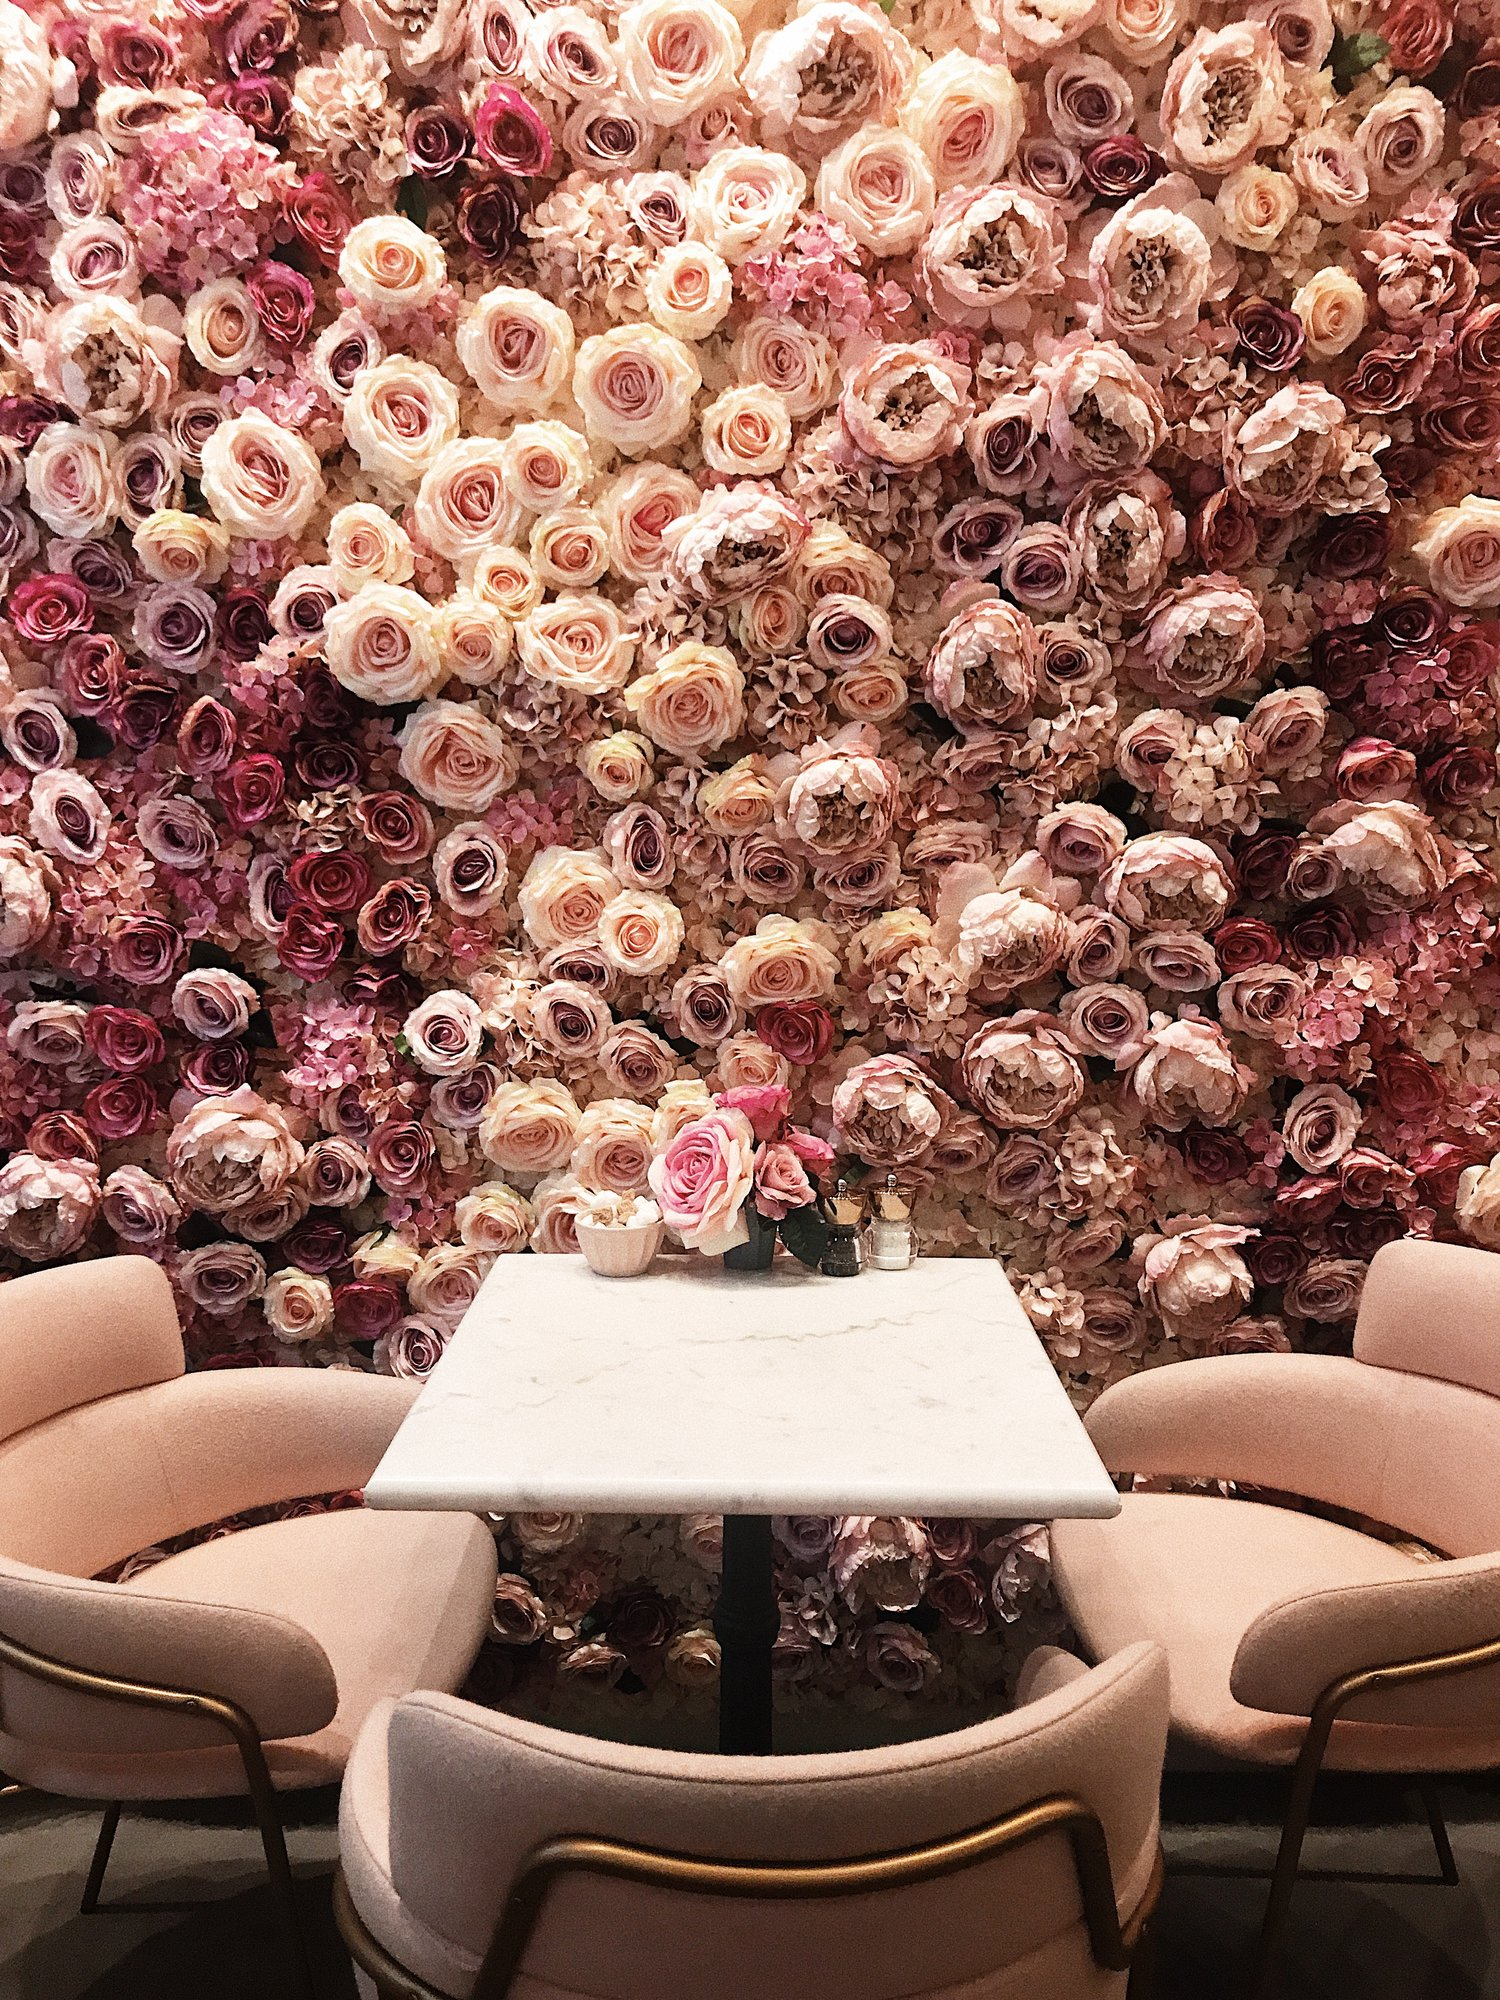 EL&N Café - 9 Market Place, Oxford Circus, Flagship w/ Multiple locationsEat, Live, and nourish! Founded in 2017 by Alexandra Miller, EL&N has multiple locations and is known for it's iconic flower walls, use of pink hues, and alternative lattes! Pop into one of these pretty destinations for a morning or afternoon pick me up!